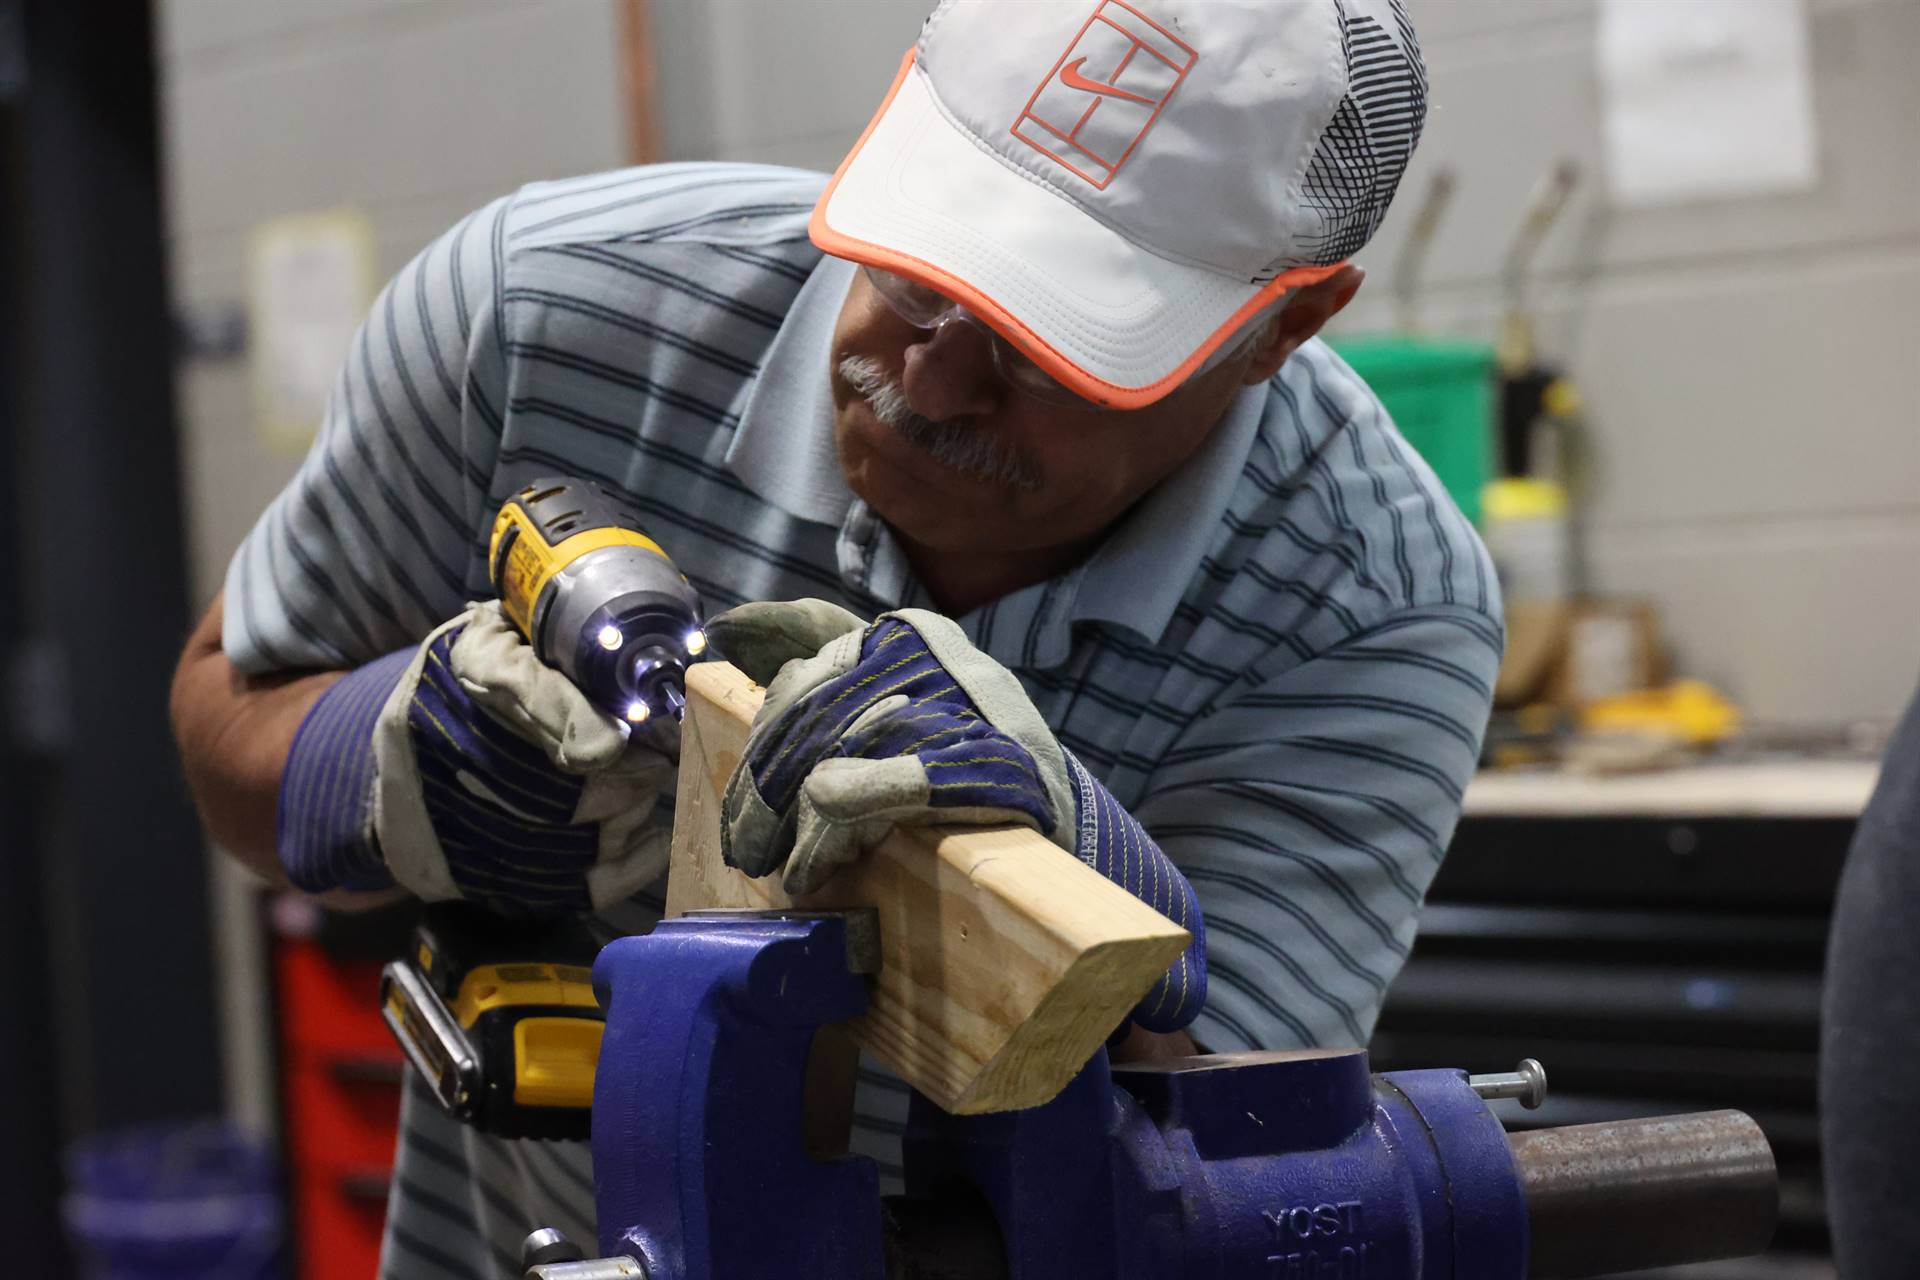 Man using power drill to create wood structure